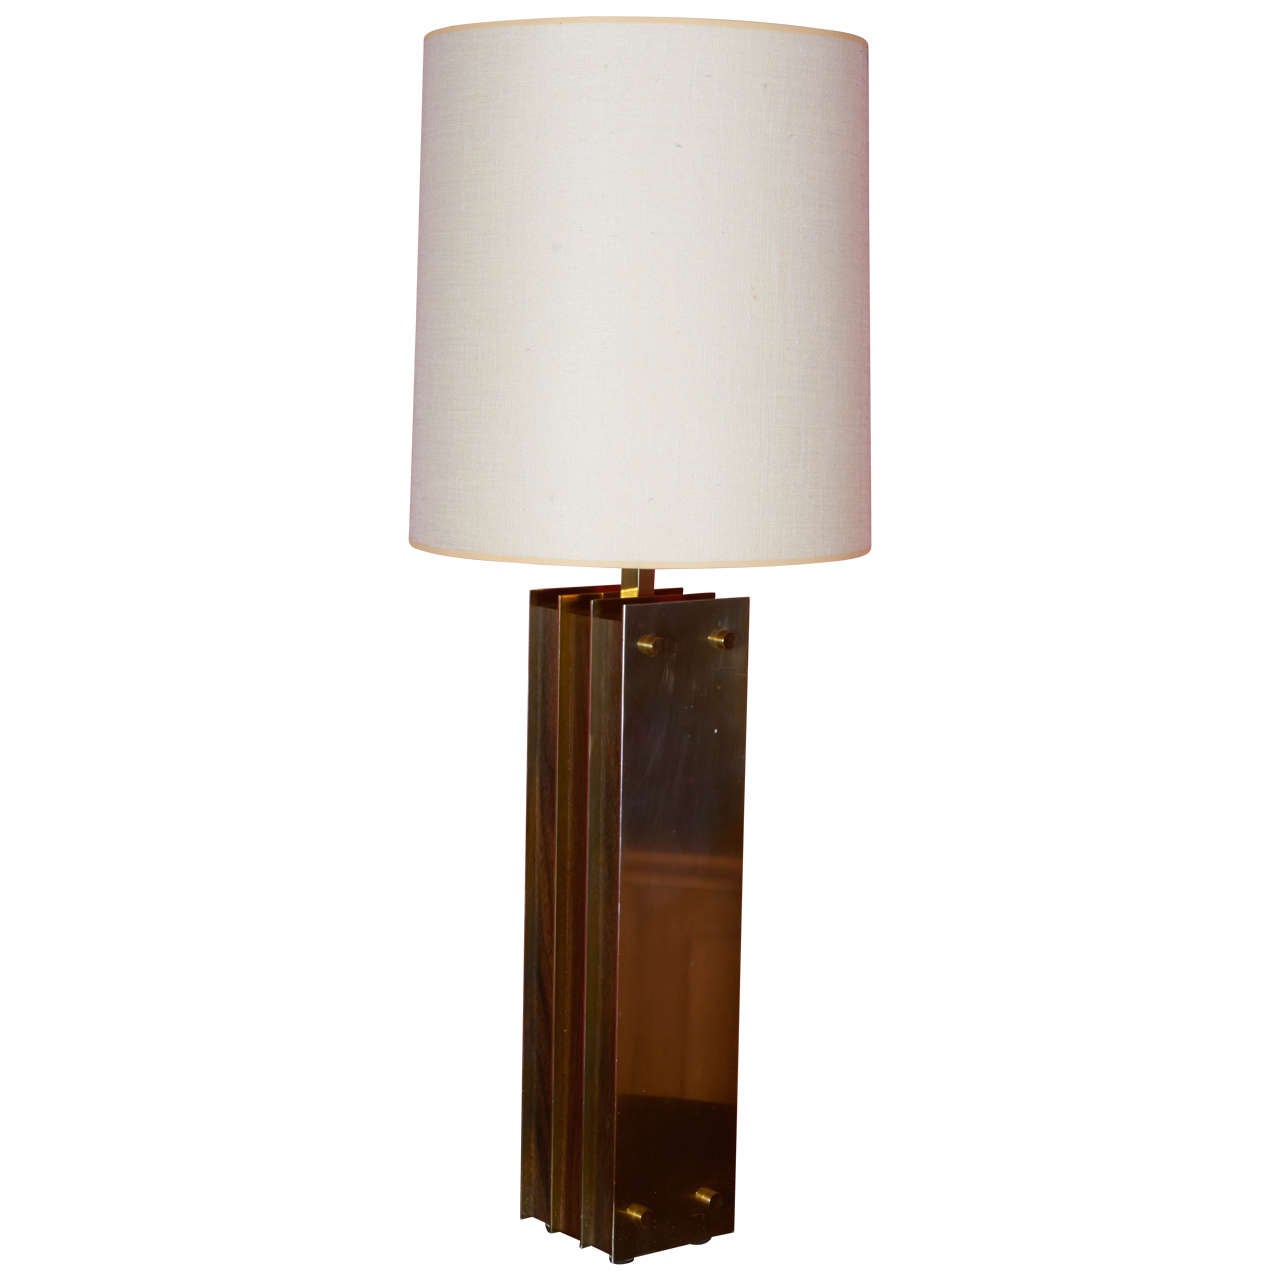 Laurel I Beam Table Lamps with Wood and Brass, 1950s